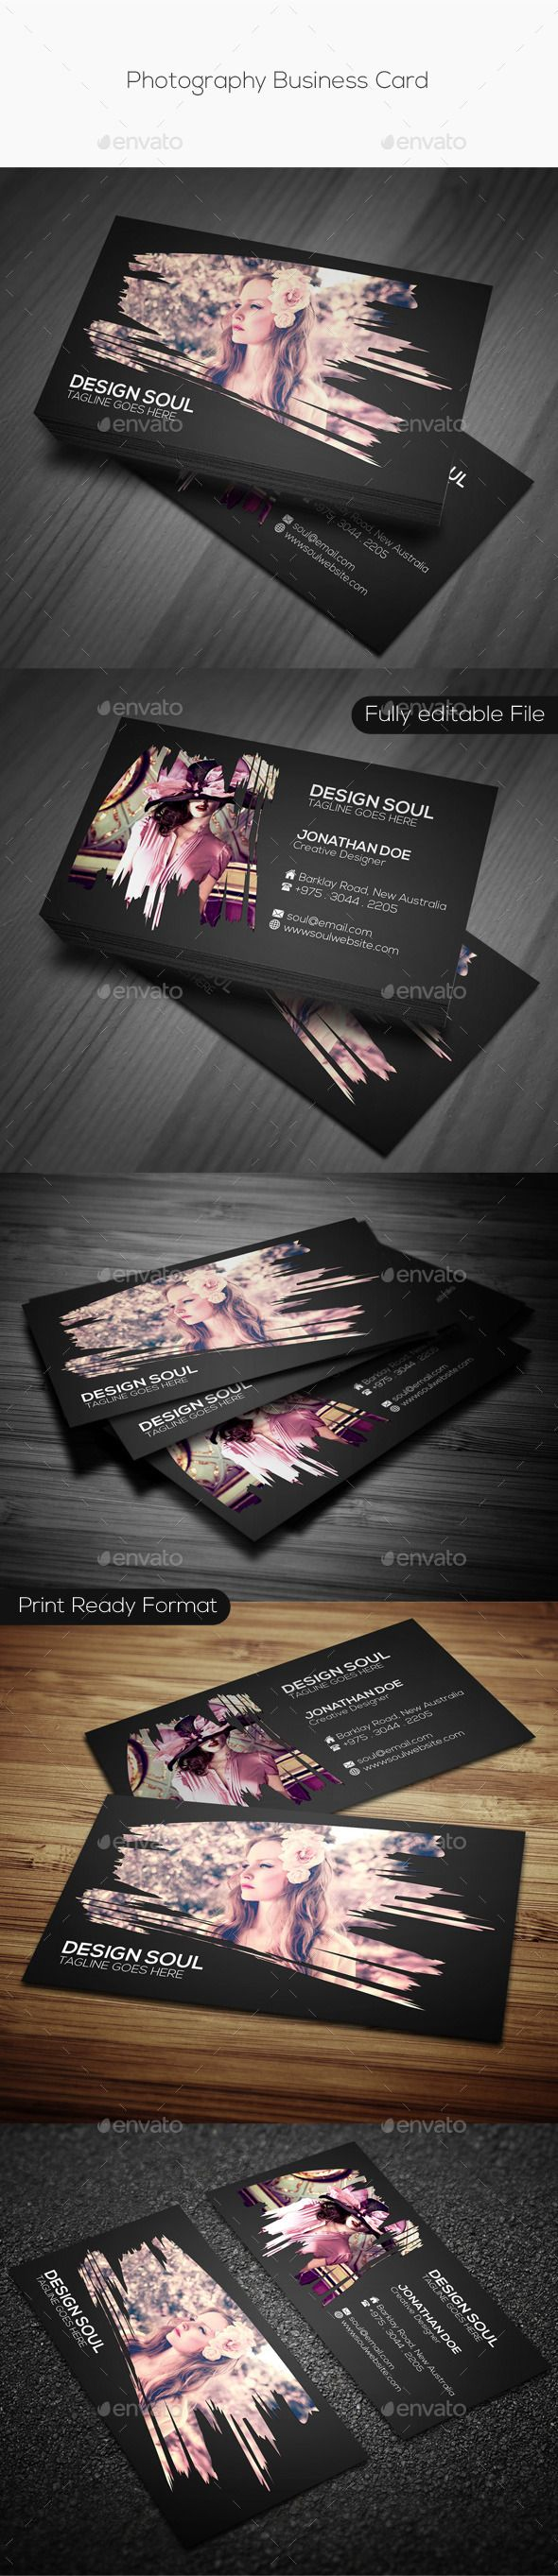 Photography Business Card Template #design Download: http://graphicriver.net/item/photography-business-card/9259529?ref=ksioks